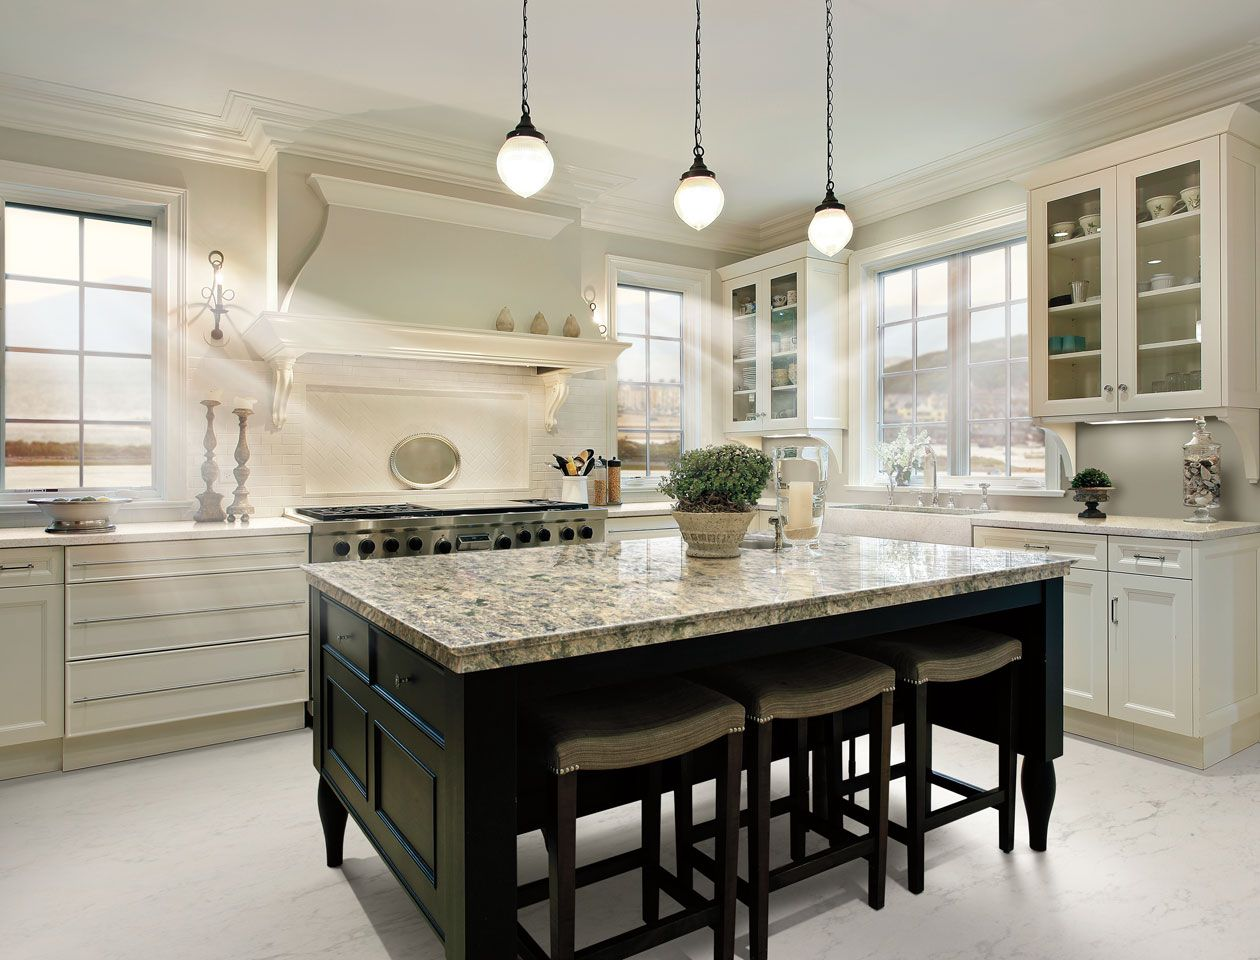 Torquay From Cambria Details Photos Samples Videos Kitchen Design Trends Kitchen Design Diy Countertops